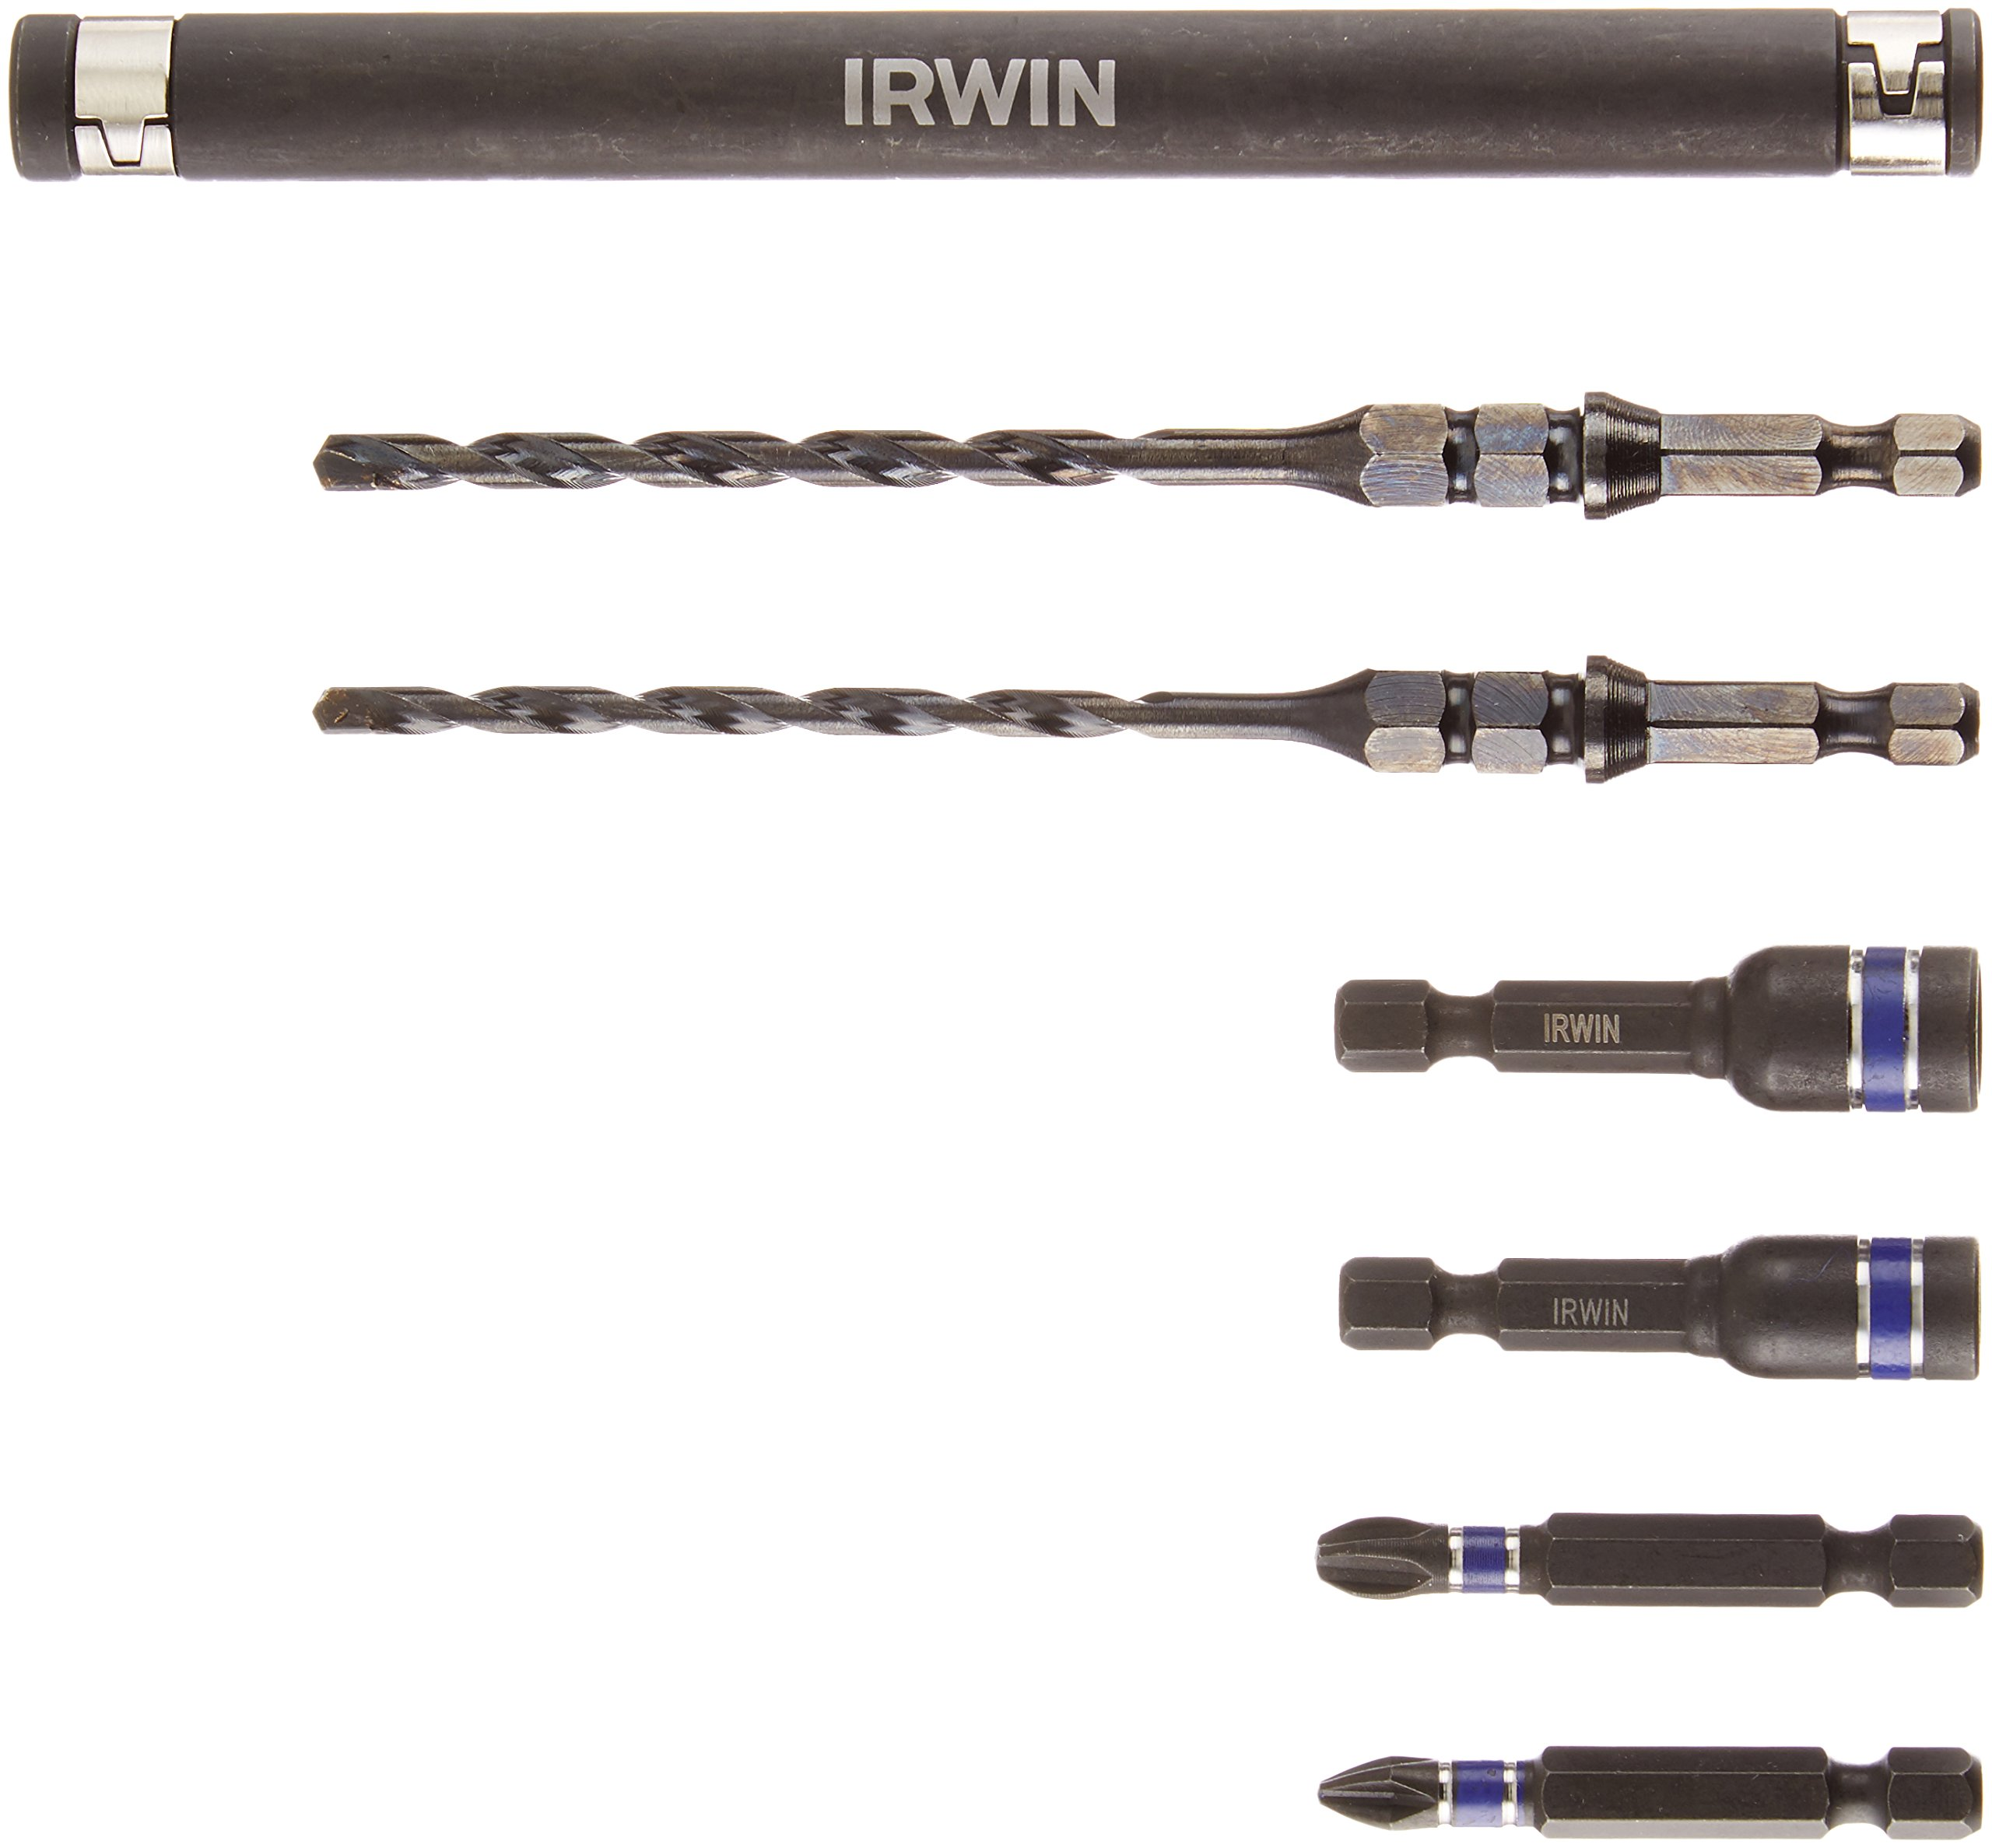 IRWIN Tools 1881080 Impact Performance Series Concrete Screw Drill-Drive Installation Set for 3/16-Inch and 1/4-Inch Screws, 7-Piece